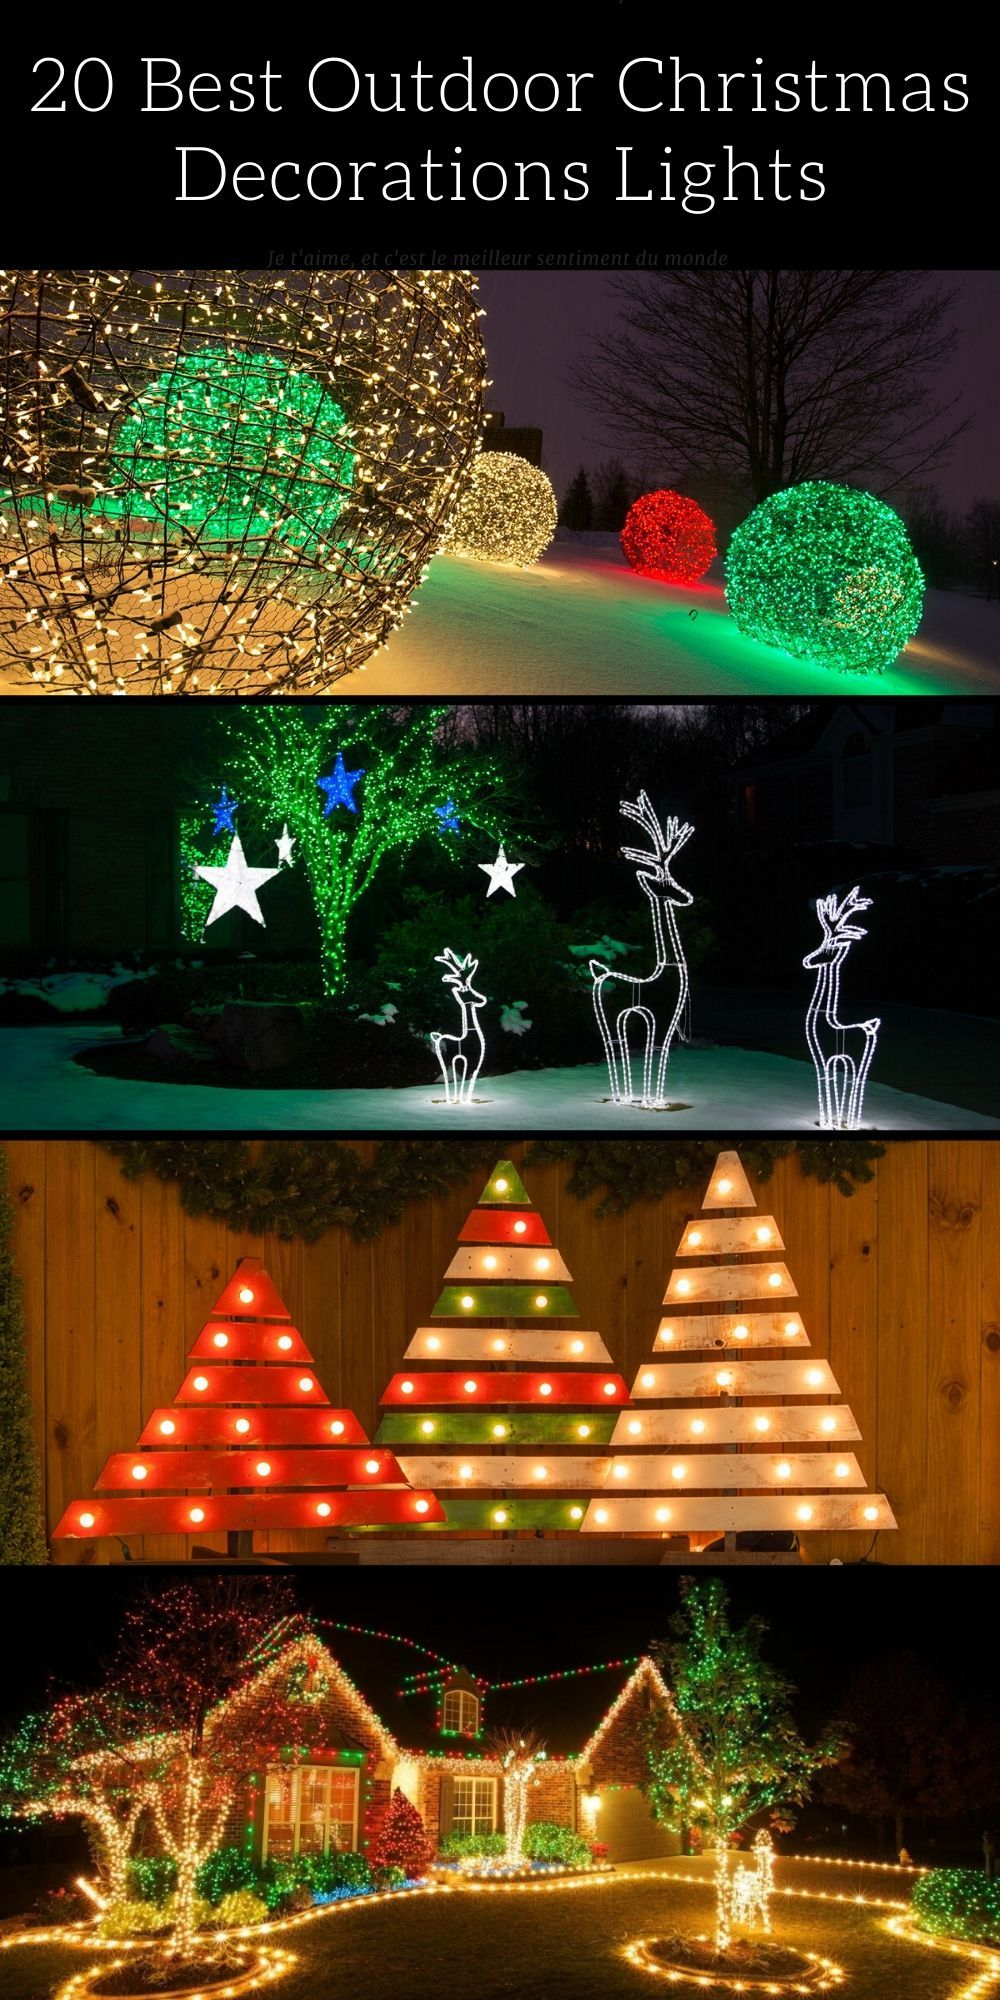 20 Best Outdoor Christmas Decorations Lights Id Lights Outdoor Christmas Decorations Lights Decorating With Christmas Lights Outdoor Christmas Decorations